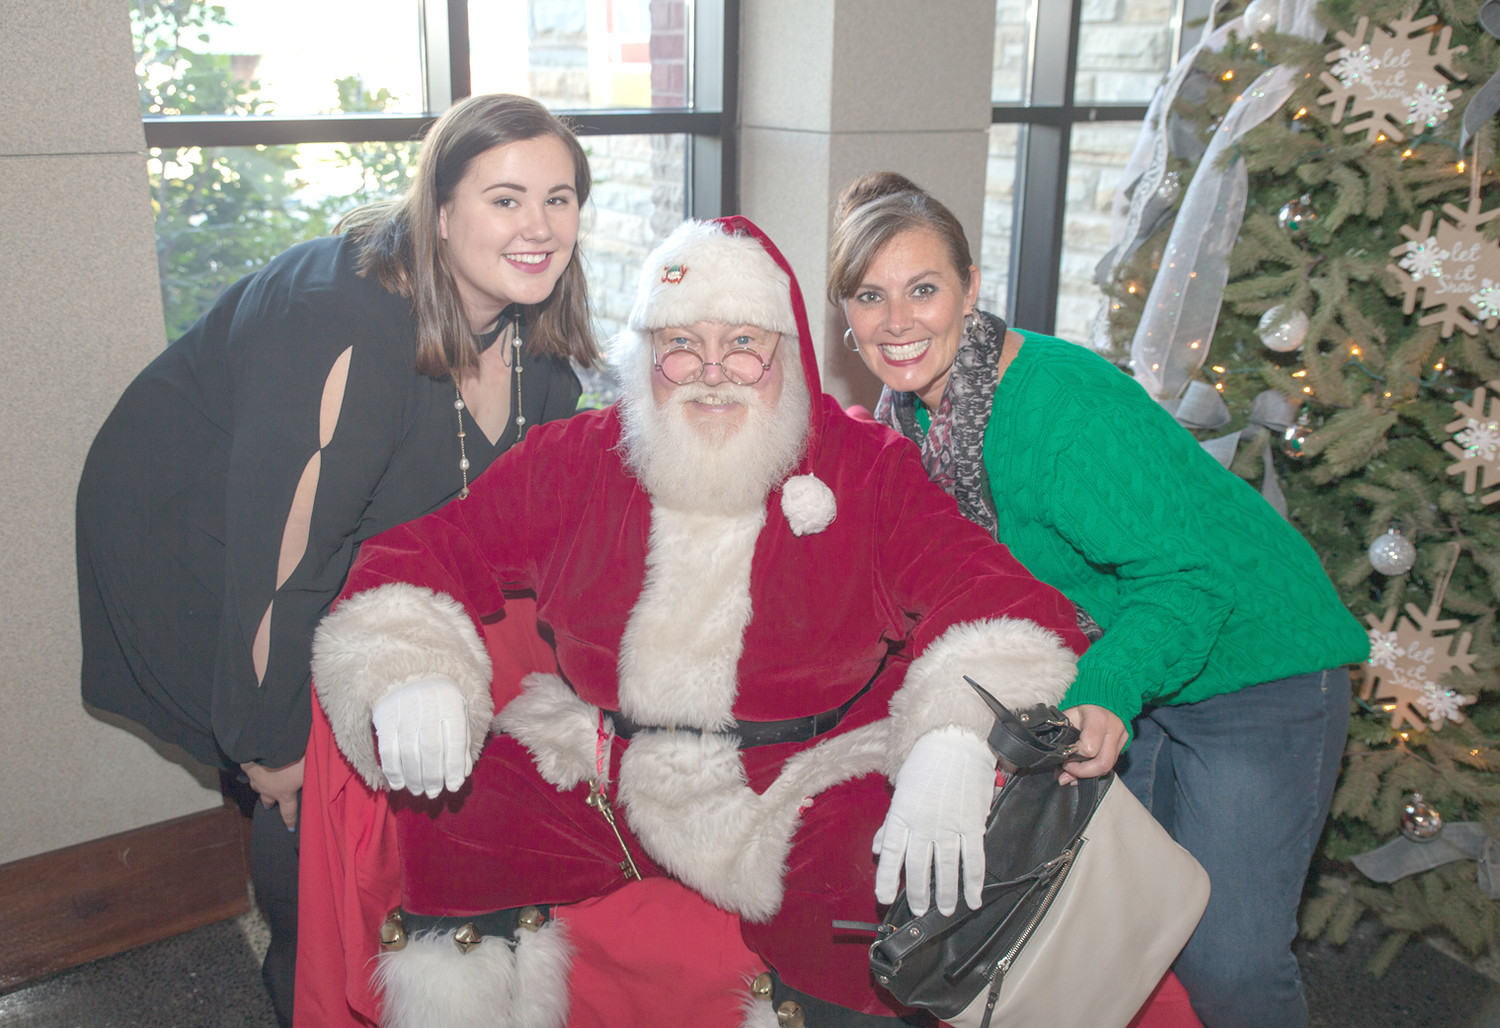 SANTA EVEN TOOK SOME time out of his busy December to support the work of local arts and crafts.  Maranda Dye, left, Santa and Virlena Dye, right, pose with Santa during the event.